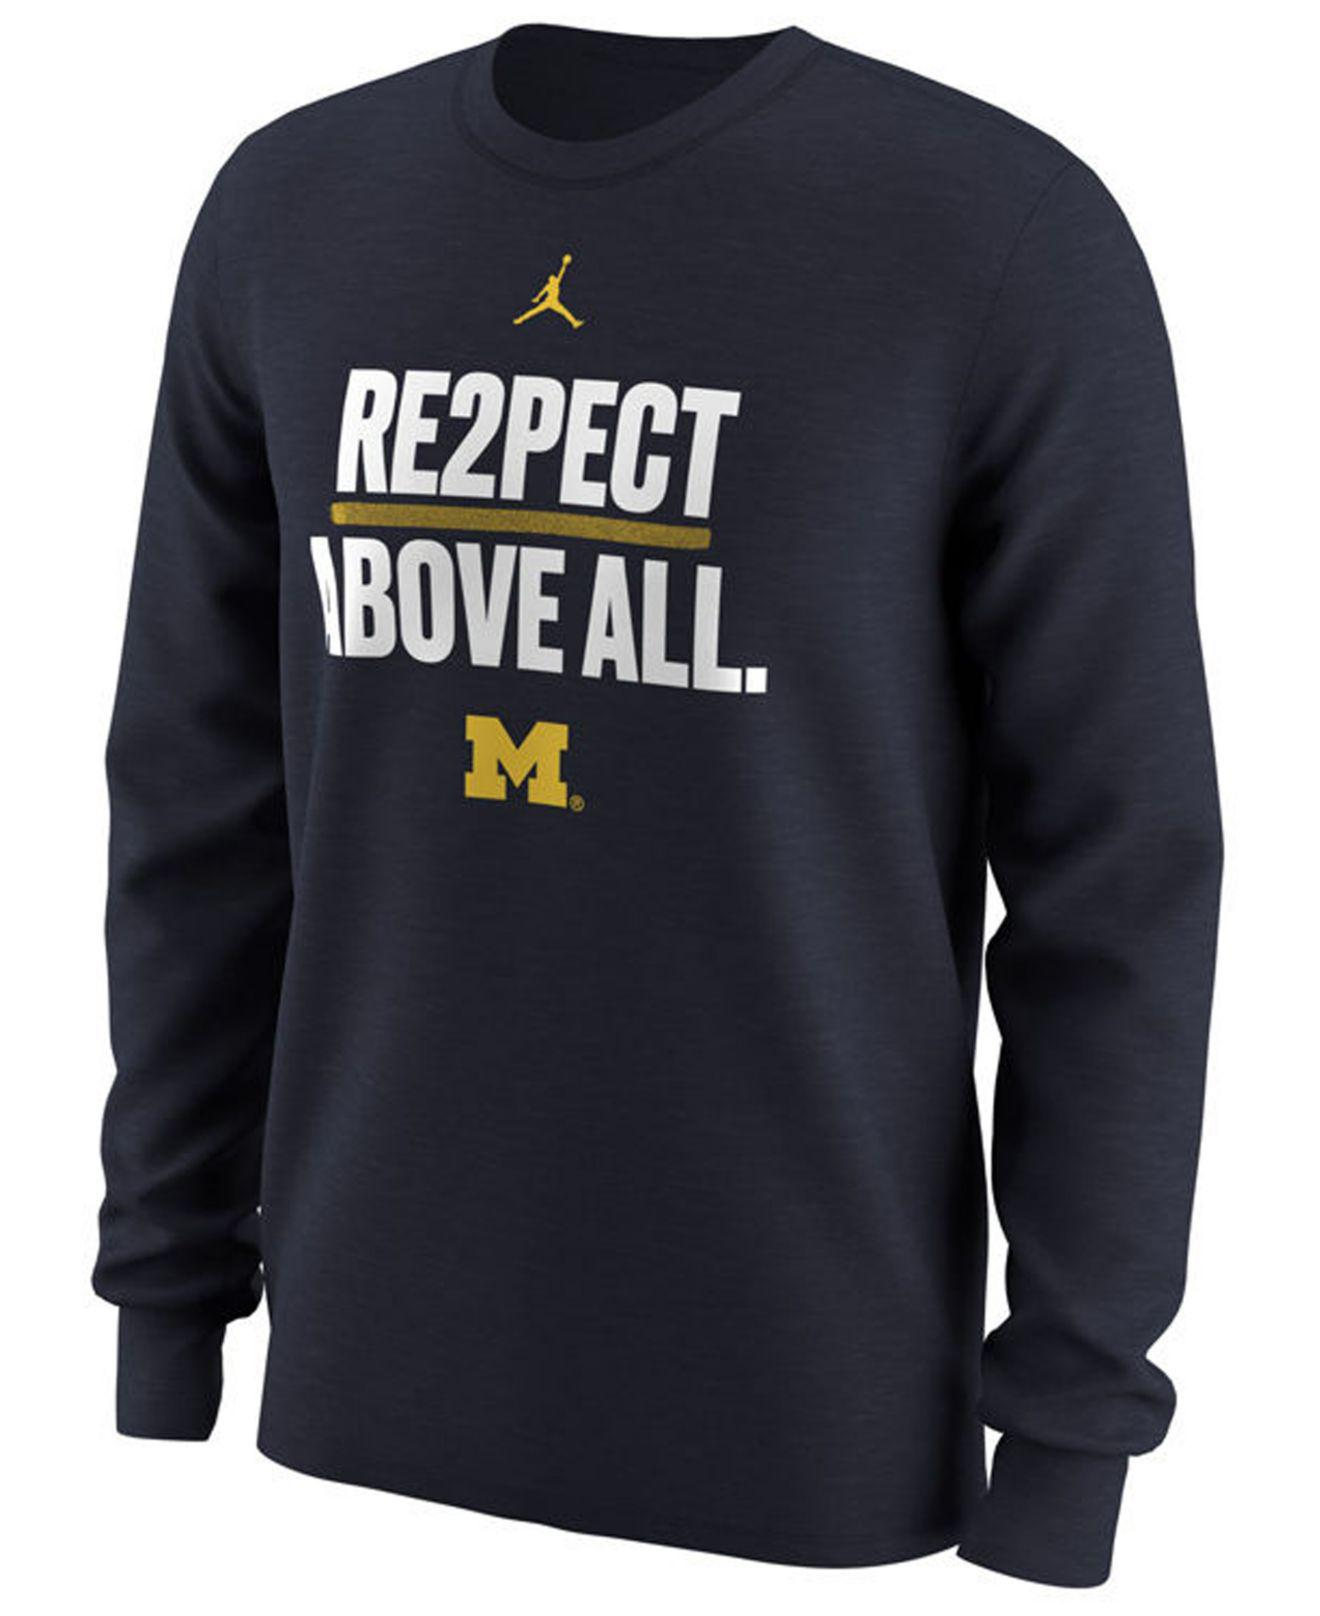 0371d7b2f80c5d Lyst - Nike Michigan Wolverines Re2pect Above All Long Sleeve T ...